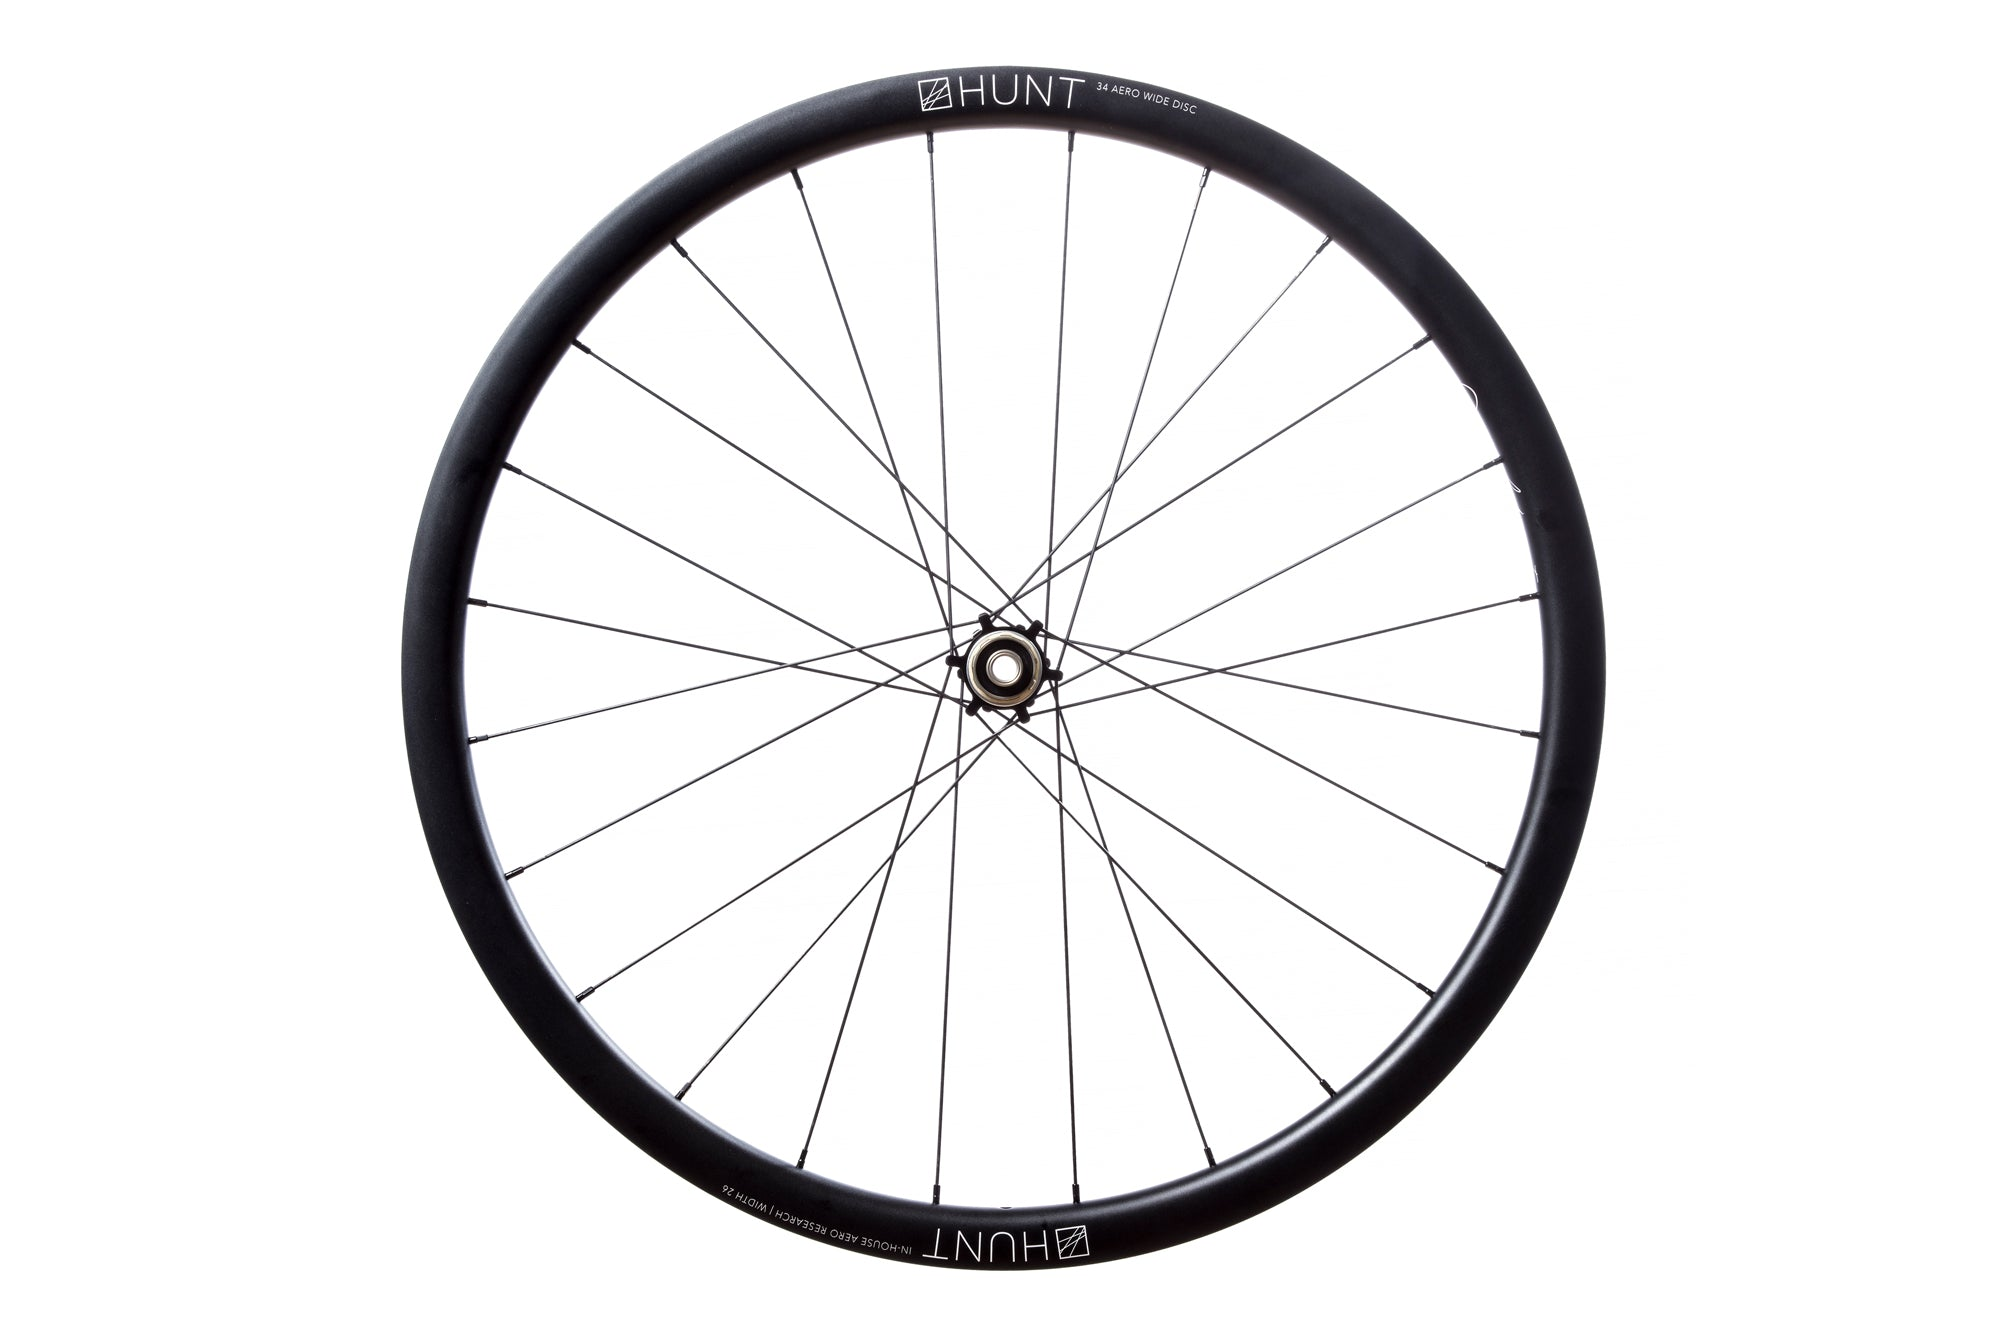 <h1>Rims</h1><i>To achieve the wide profile, yet also create a lightweight 1548g high performance wheelset, 6069-T6 alloy was the right choice. It has a 69% higher Ultimate Tensile Strength (480 Mega Pascals), than the 6061-T6 alloy (280 MPa) often used in performance road rims.</i>